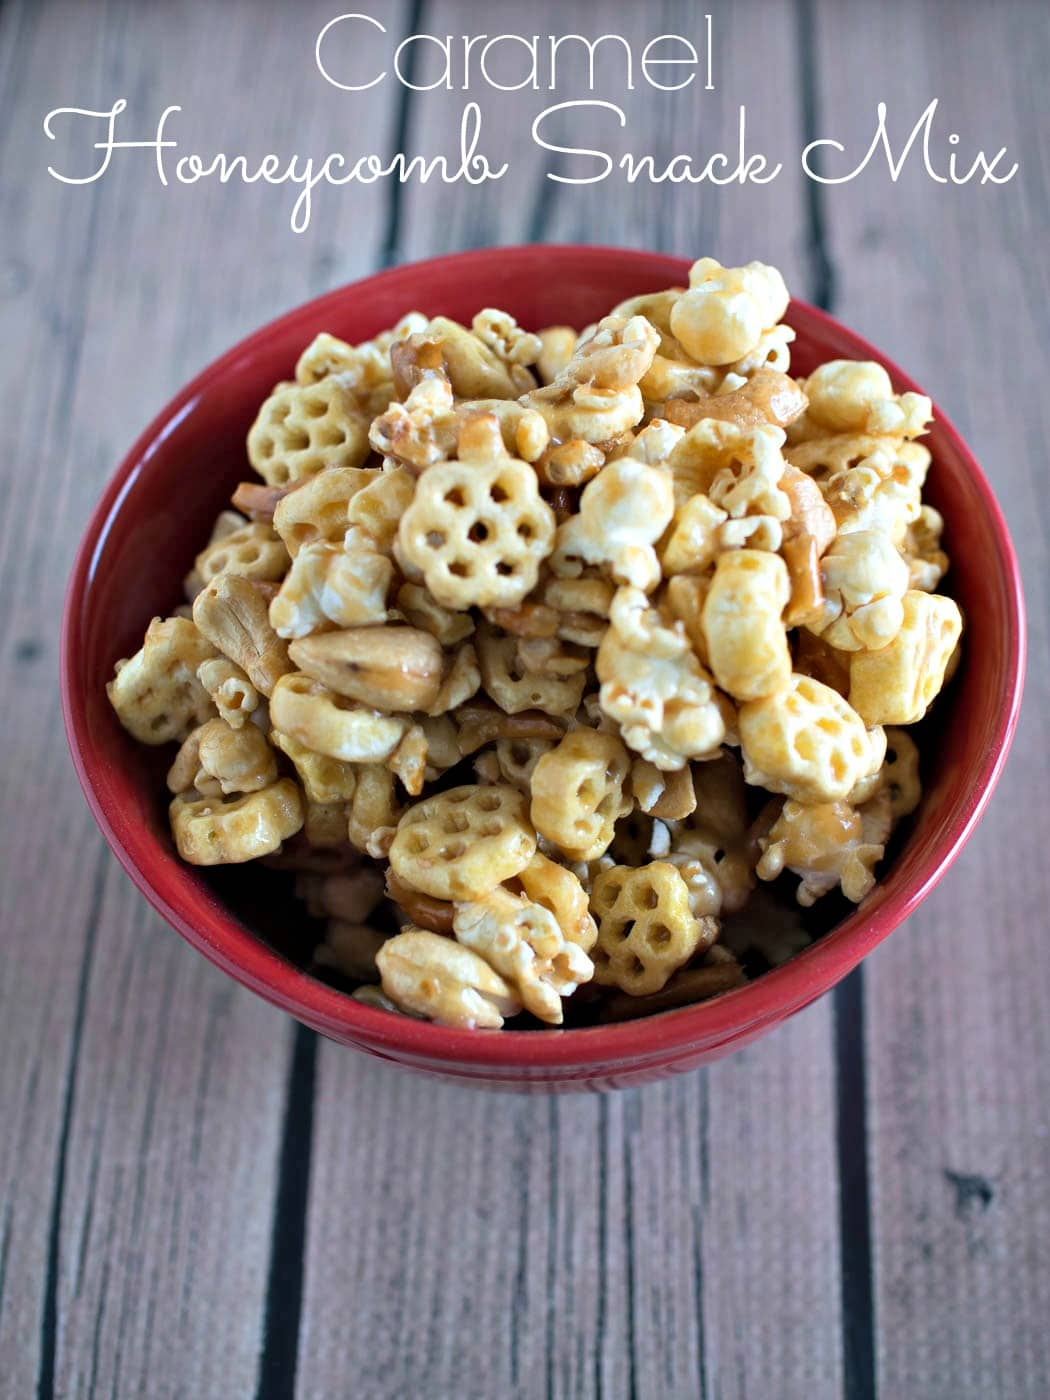 Caramel Honeycomb Snack Mix - a tasty snack made with Honeycomb cereal